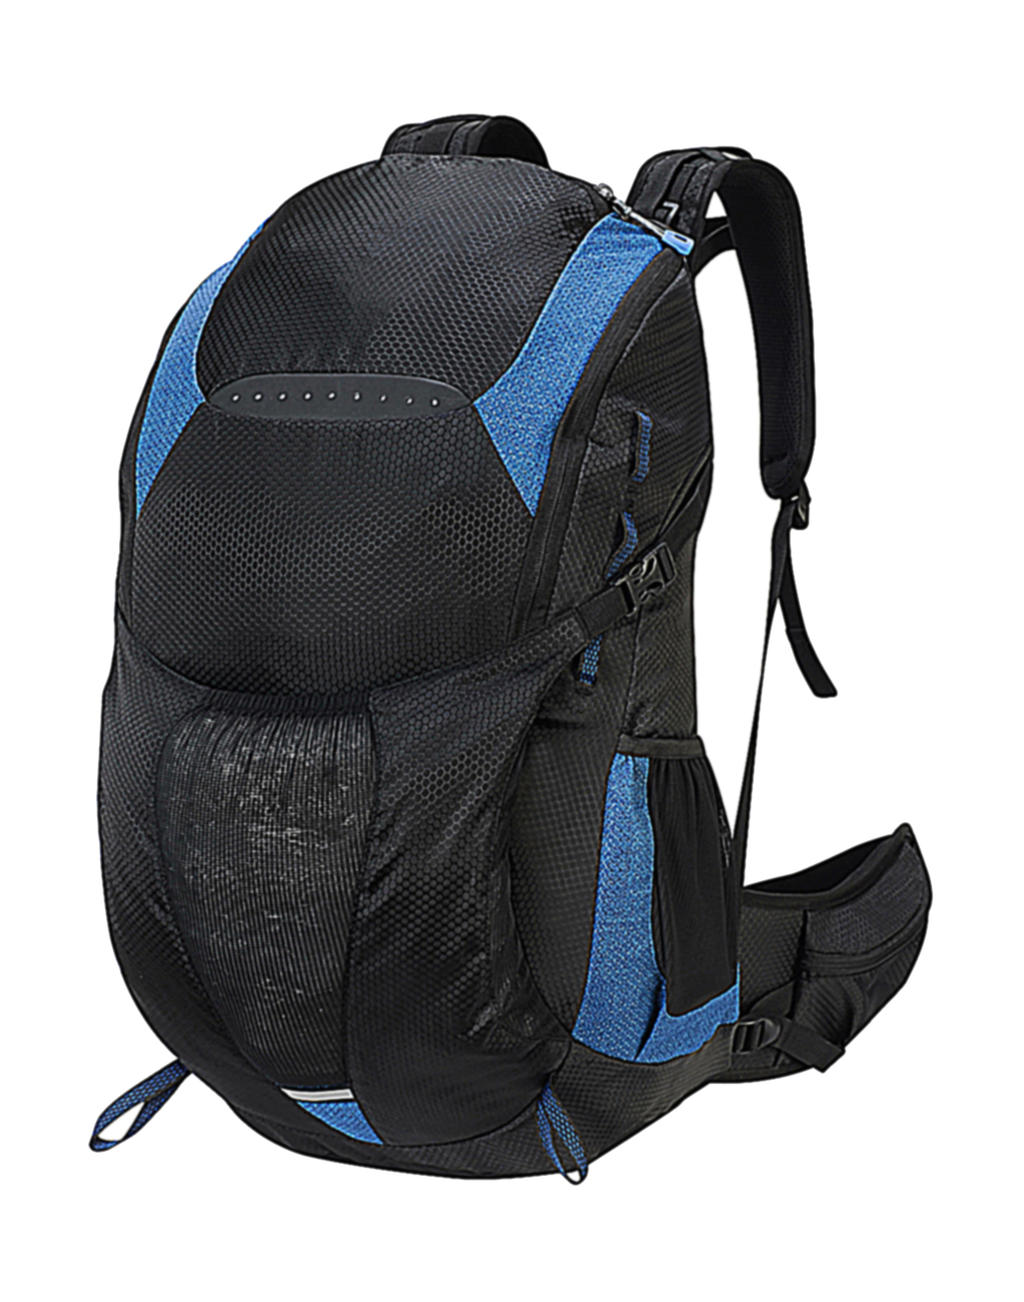 Matterhorn 30L Hiker Backpack